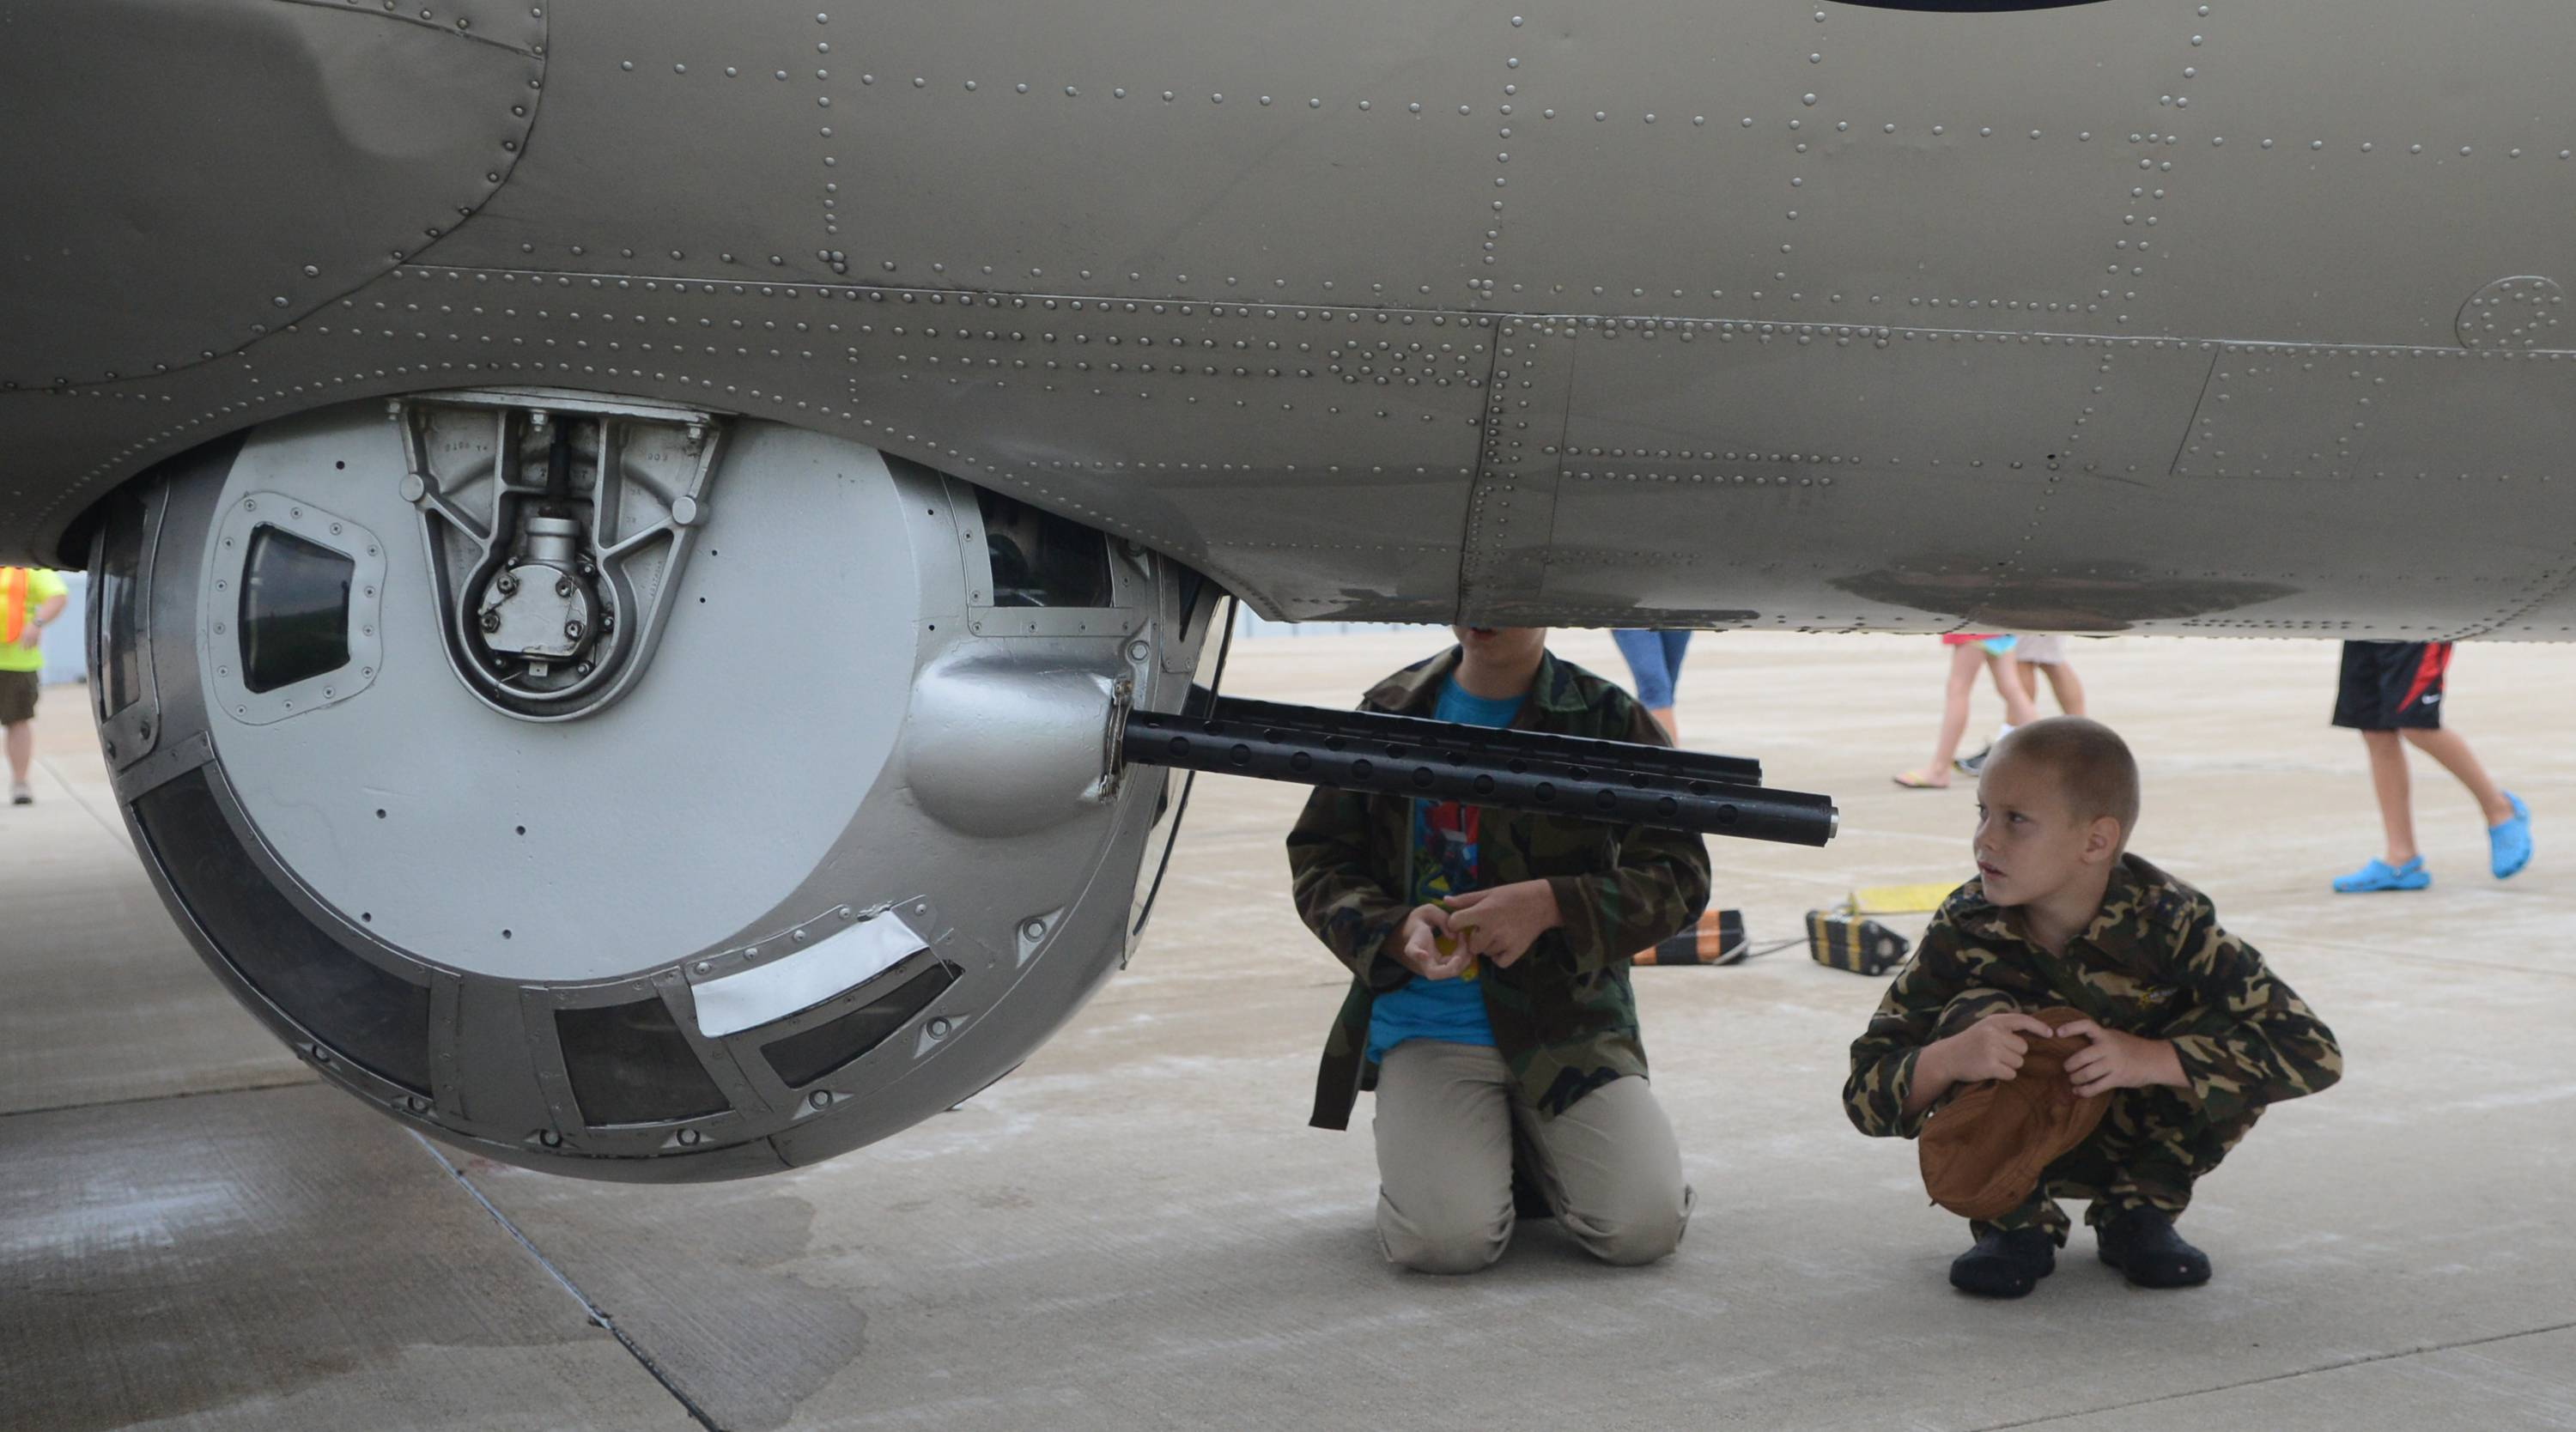 Jack Guyett, 6, right, and his brother, Tommy Guyett, 10, of St. Charles get a close-up look at the belly gun of a B-17 bomber Monday at the Aurora Airport. The EAA Warbird Squadron brought the World War II plane to the airport for the weekend and took it up for 30-minute flights.